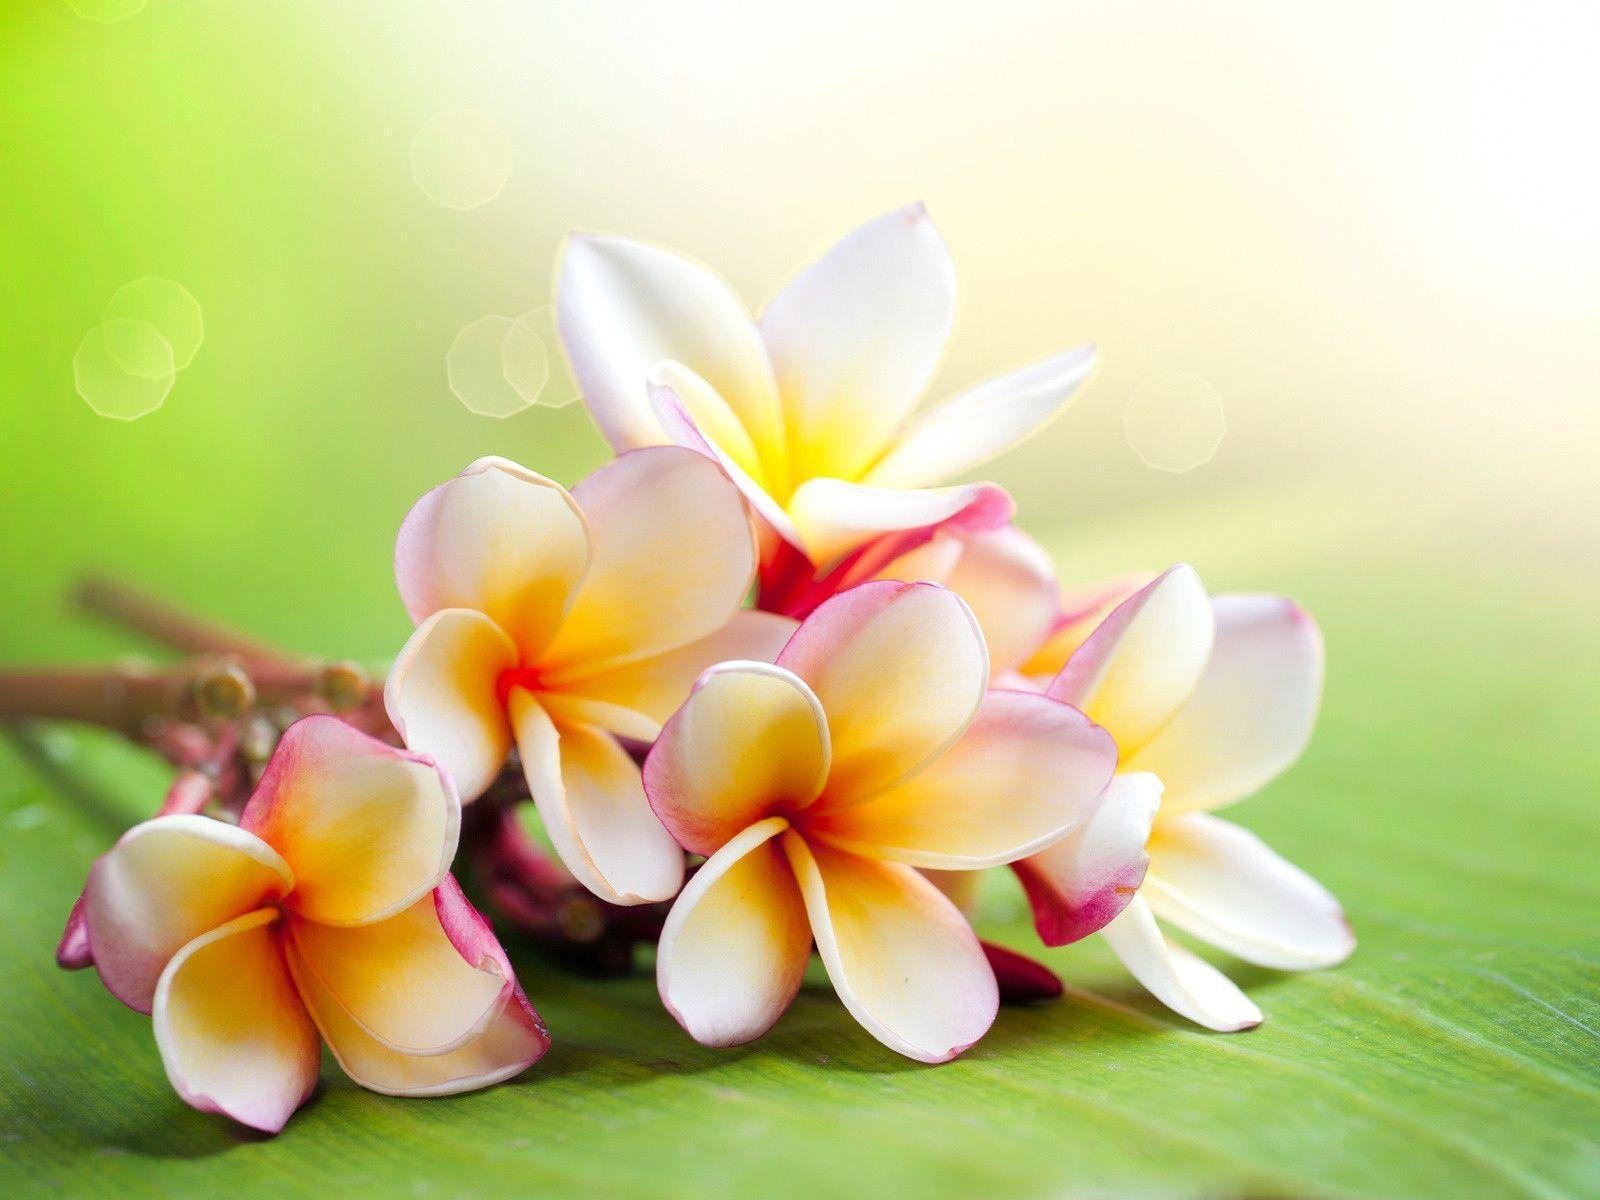 Hawaiian flower wallpapers wallpaper cave hawaii flower wallpaper 16328 full hd wallpaper desktop res izmirmasajfo